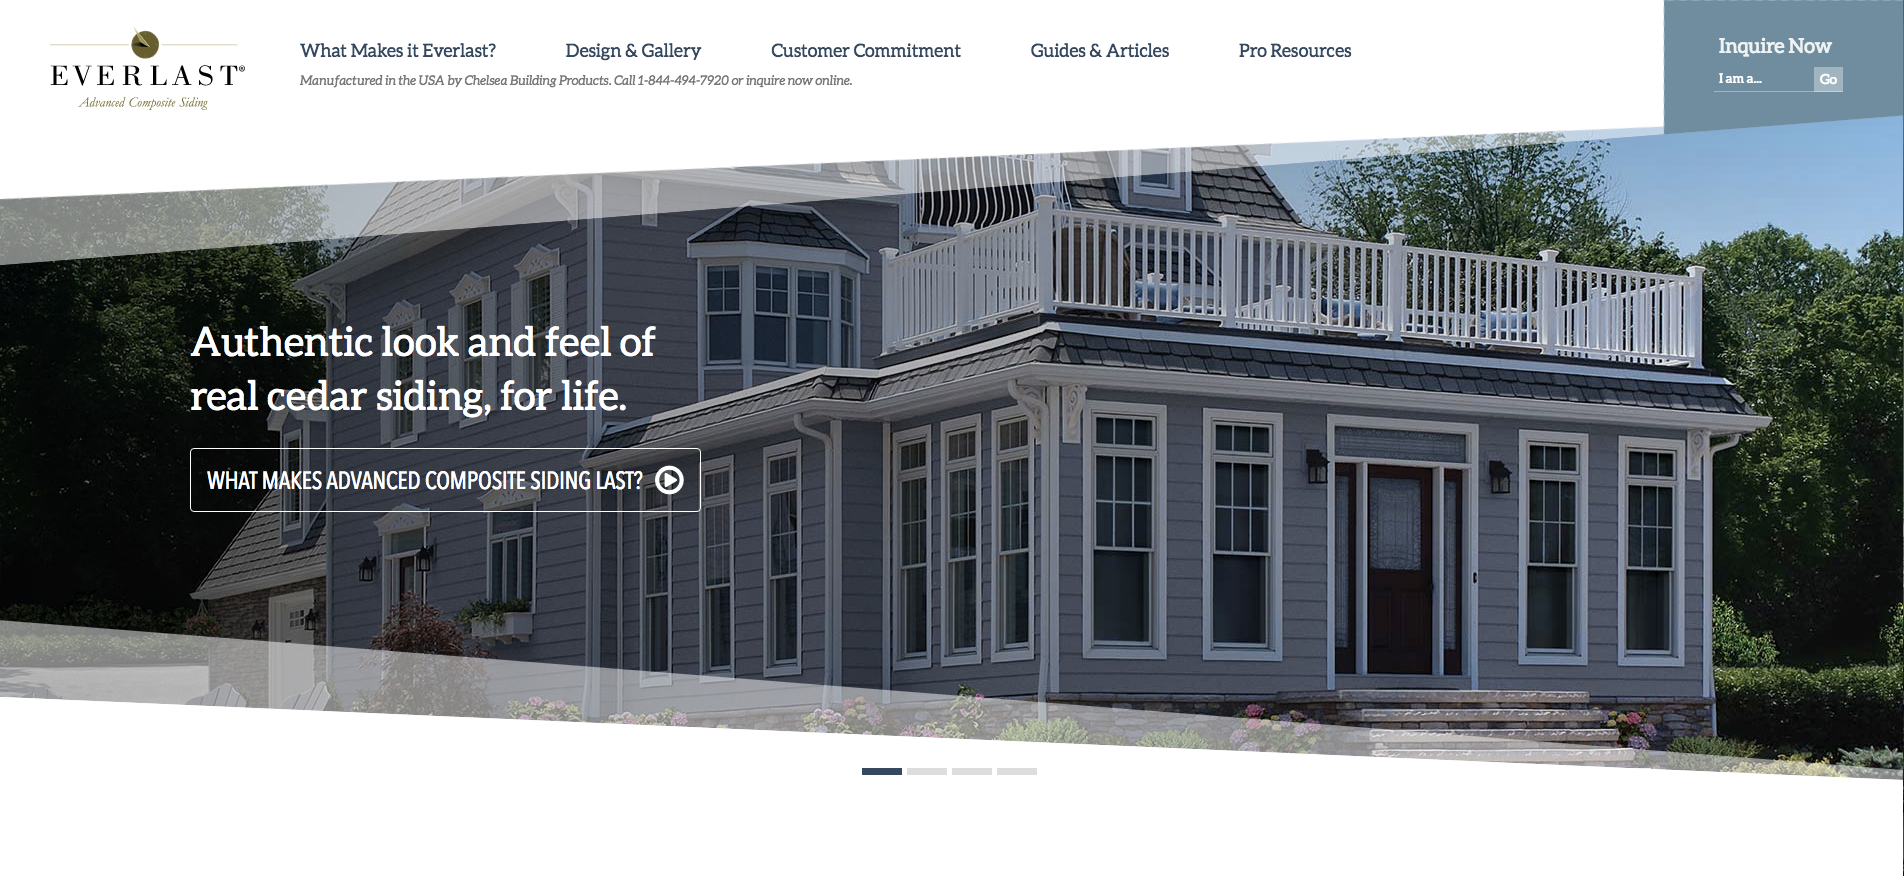 Chelsea Building Products Launches New Website For Its Everlast 174 Advanced Composite Siding